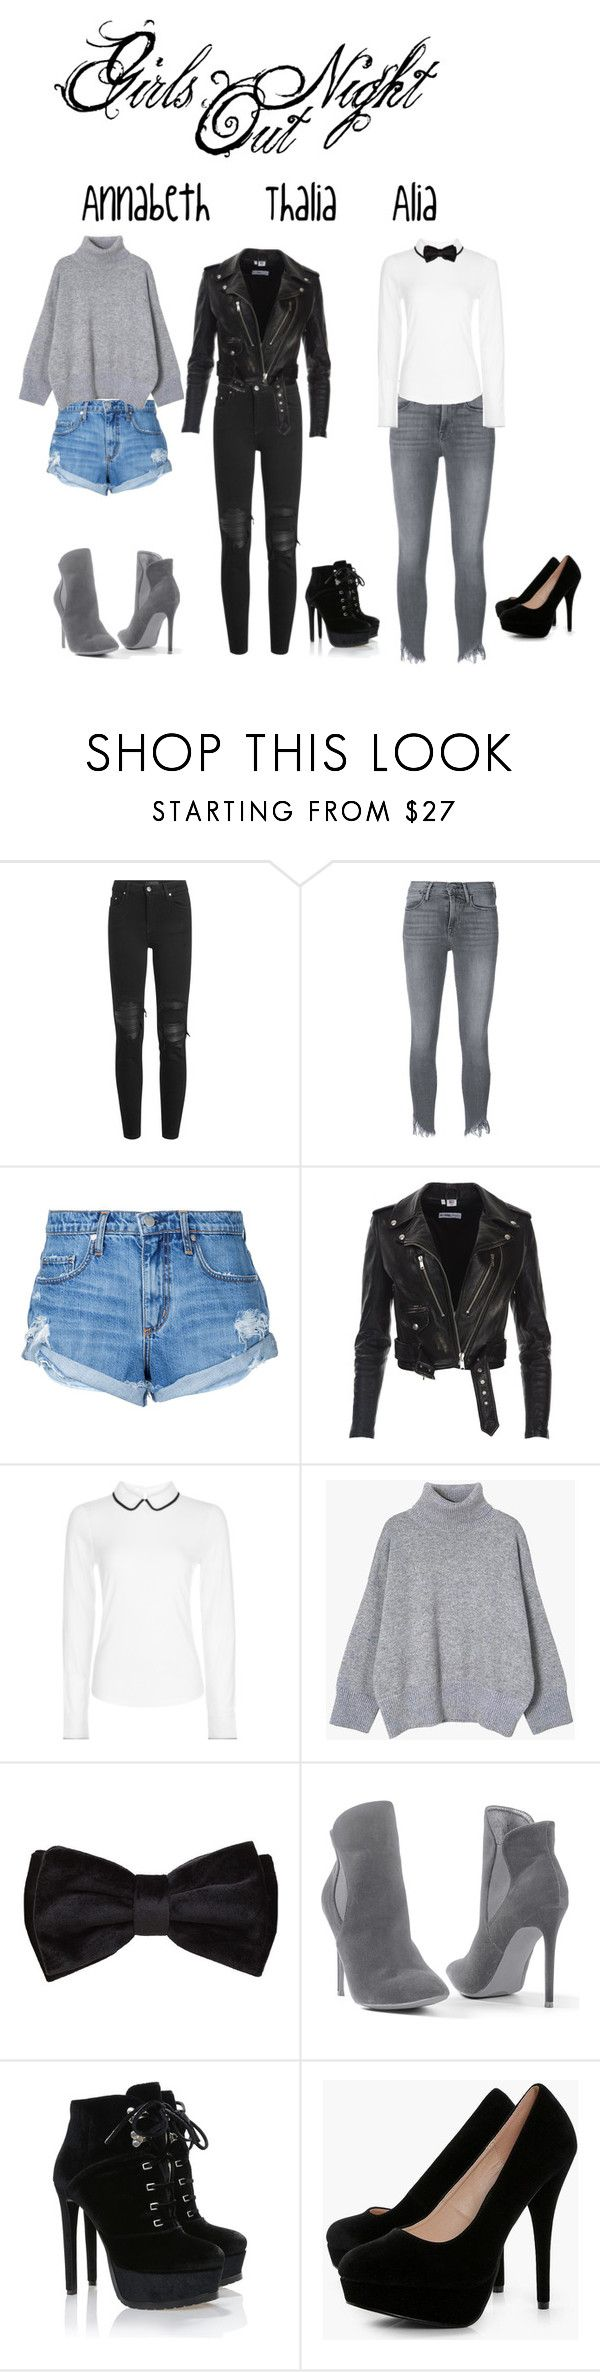 """CHB: GIRLS NIGHT OUT"" by cha62874 ❤ liked on Polyvore featuring AMIRI, Frame, Nobody Denim, Hobbs, MANGO, Venus and Boohoo"